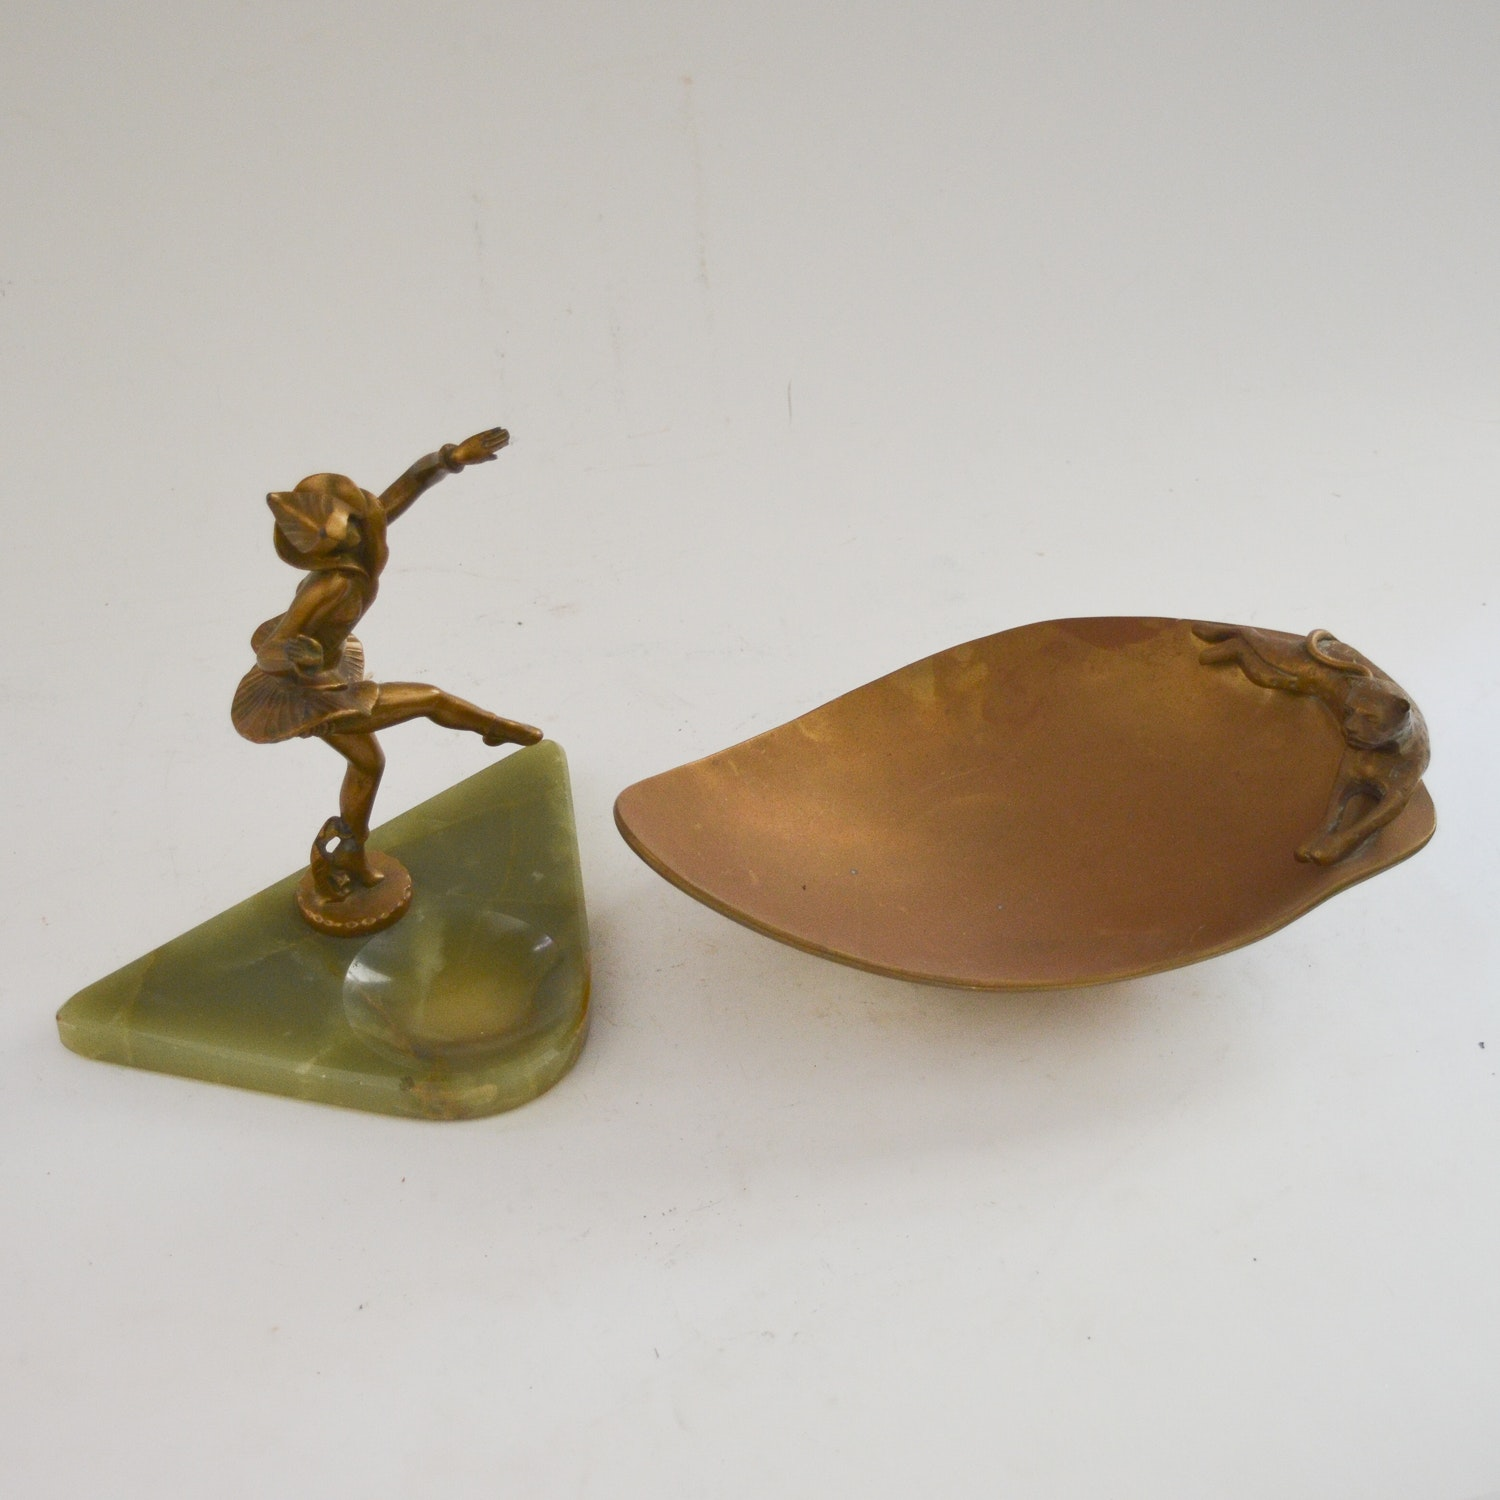 Art Deco Style Bowl and Ash Receiver